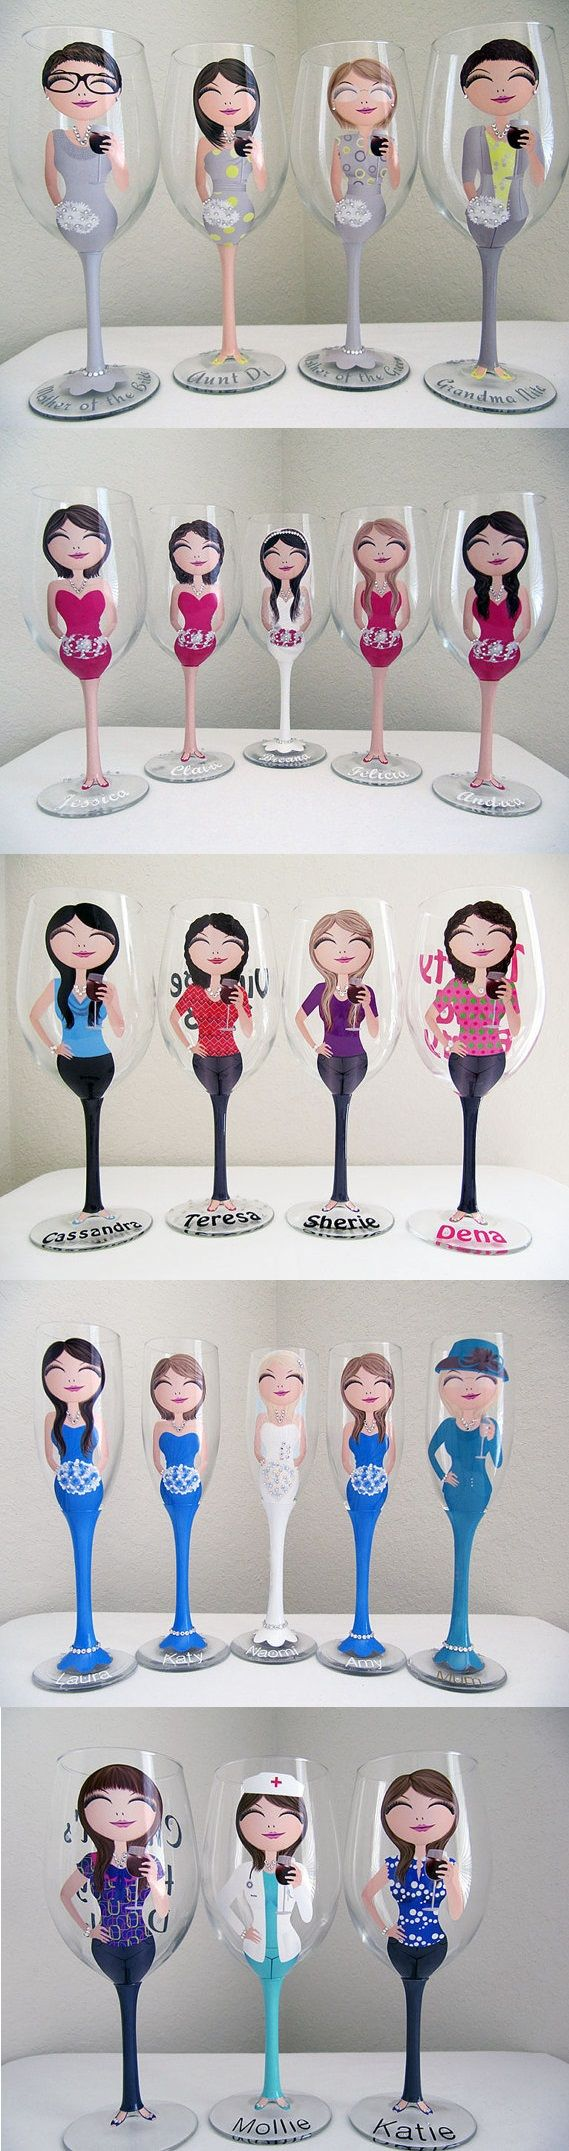 How to make wine glasses personalized